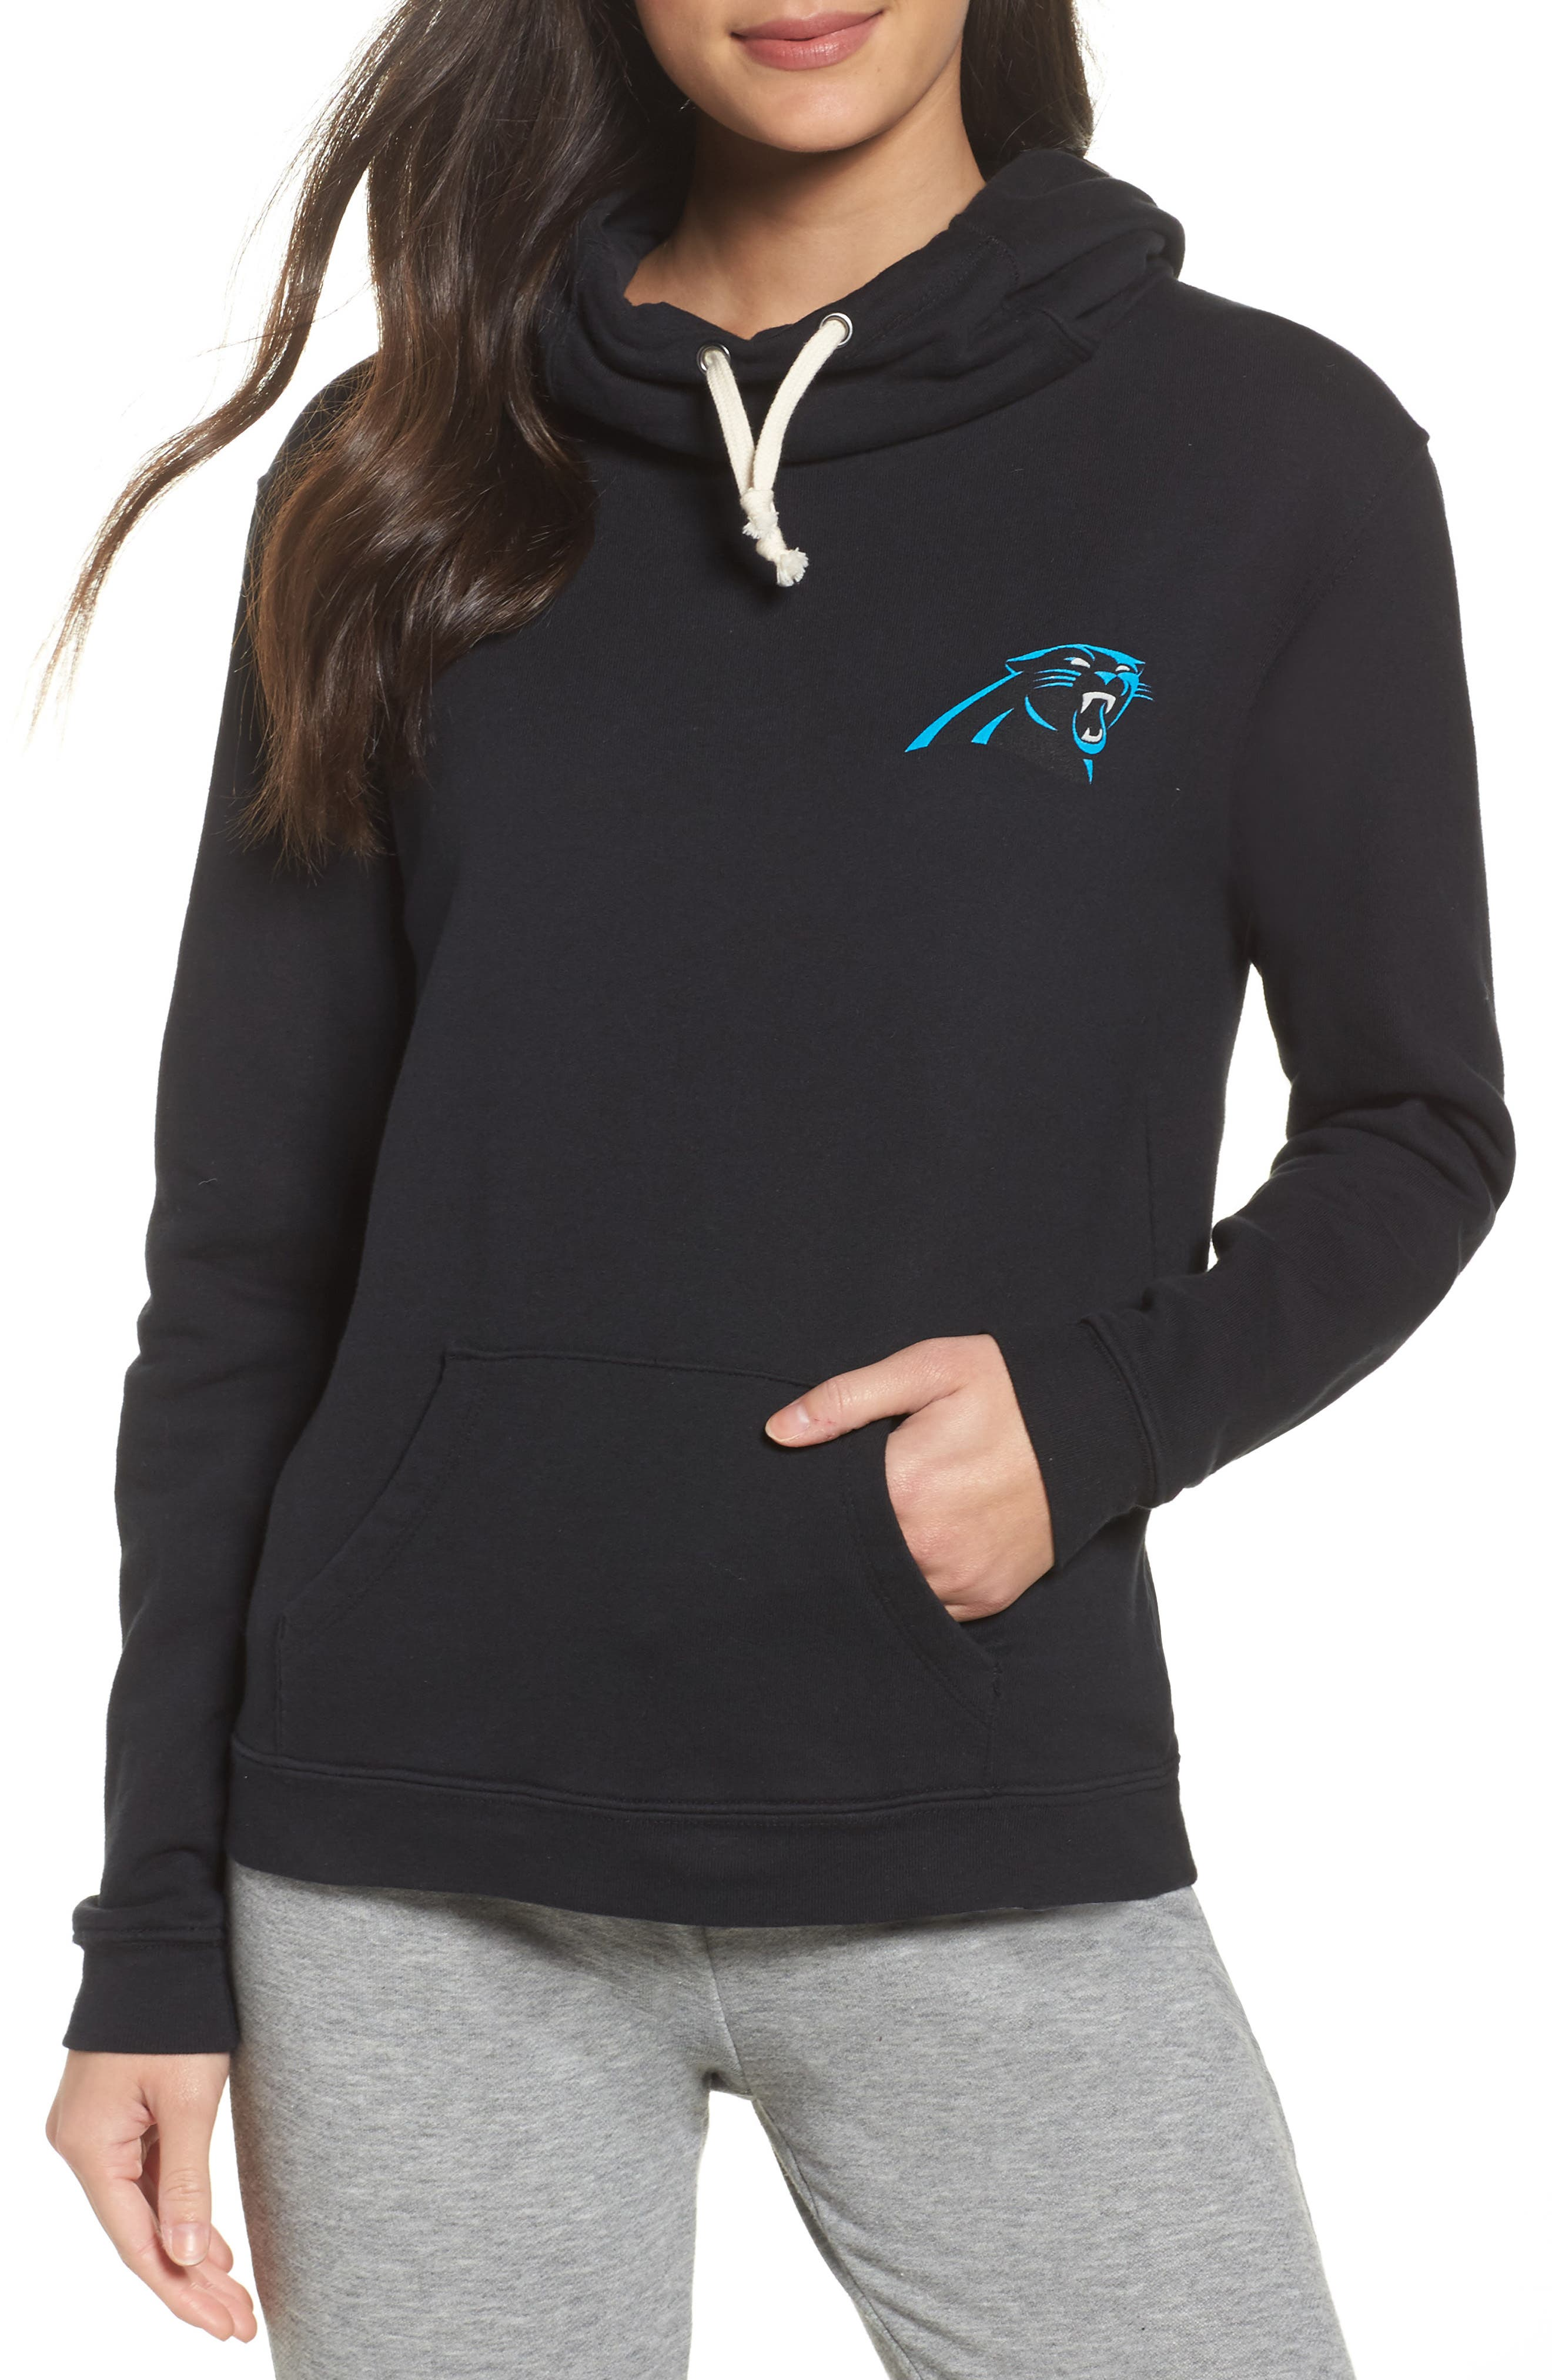 Panthers Sunday Hoodie,                         Main,                         color, 001